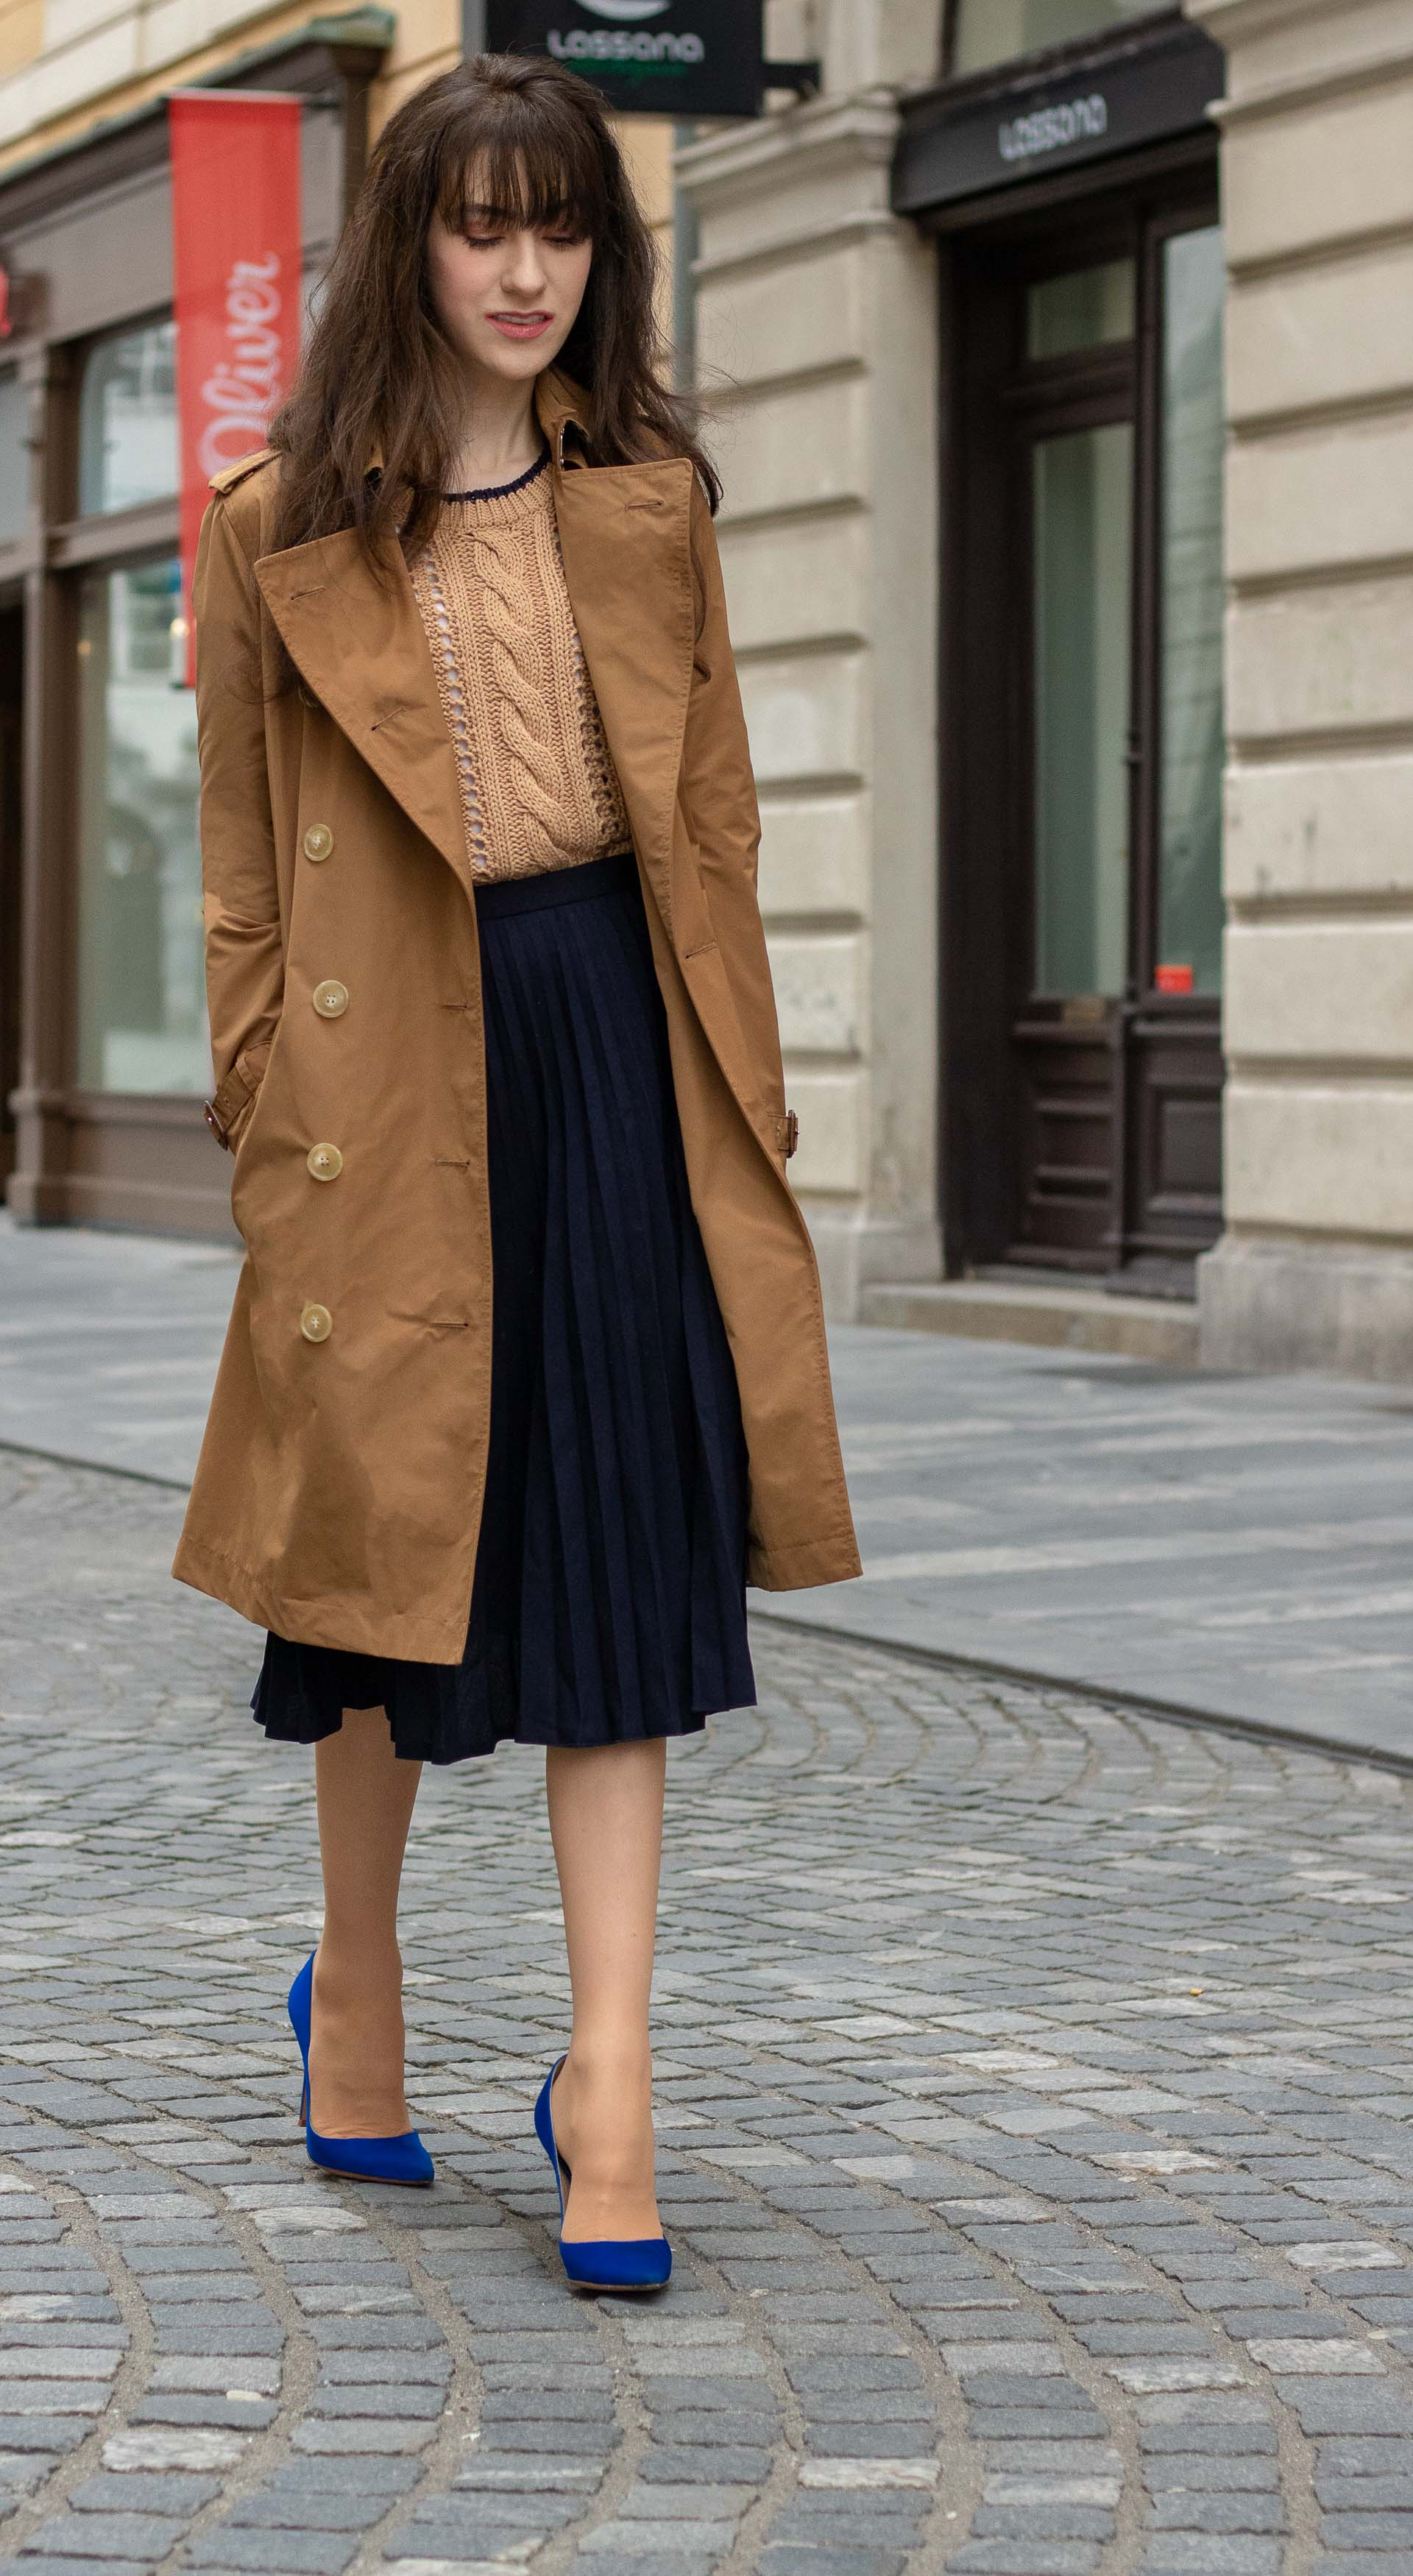 Beautiful Fashion blogger Veronika Lipar of Brunette from Wall Street dressed in camel Mando sweater camel Burberry Kensington trench coat and blue pleated midi skirt with Gianvito Rossi blue pumps on the street in spring